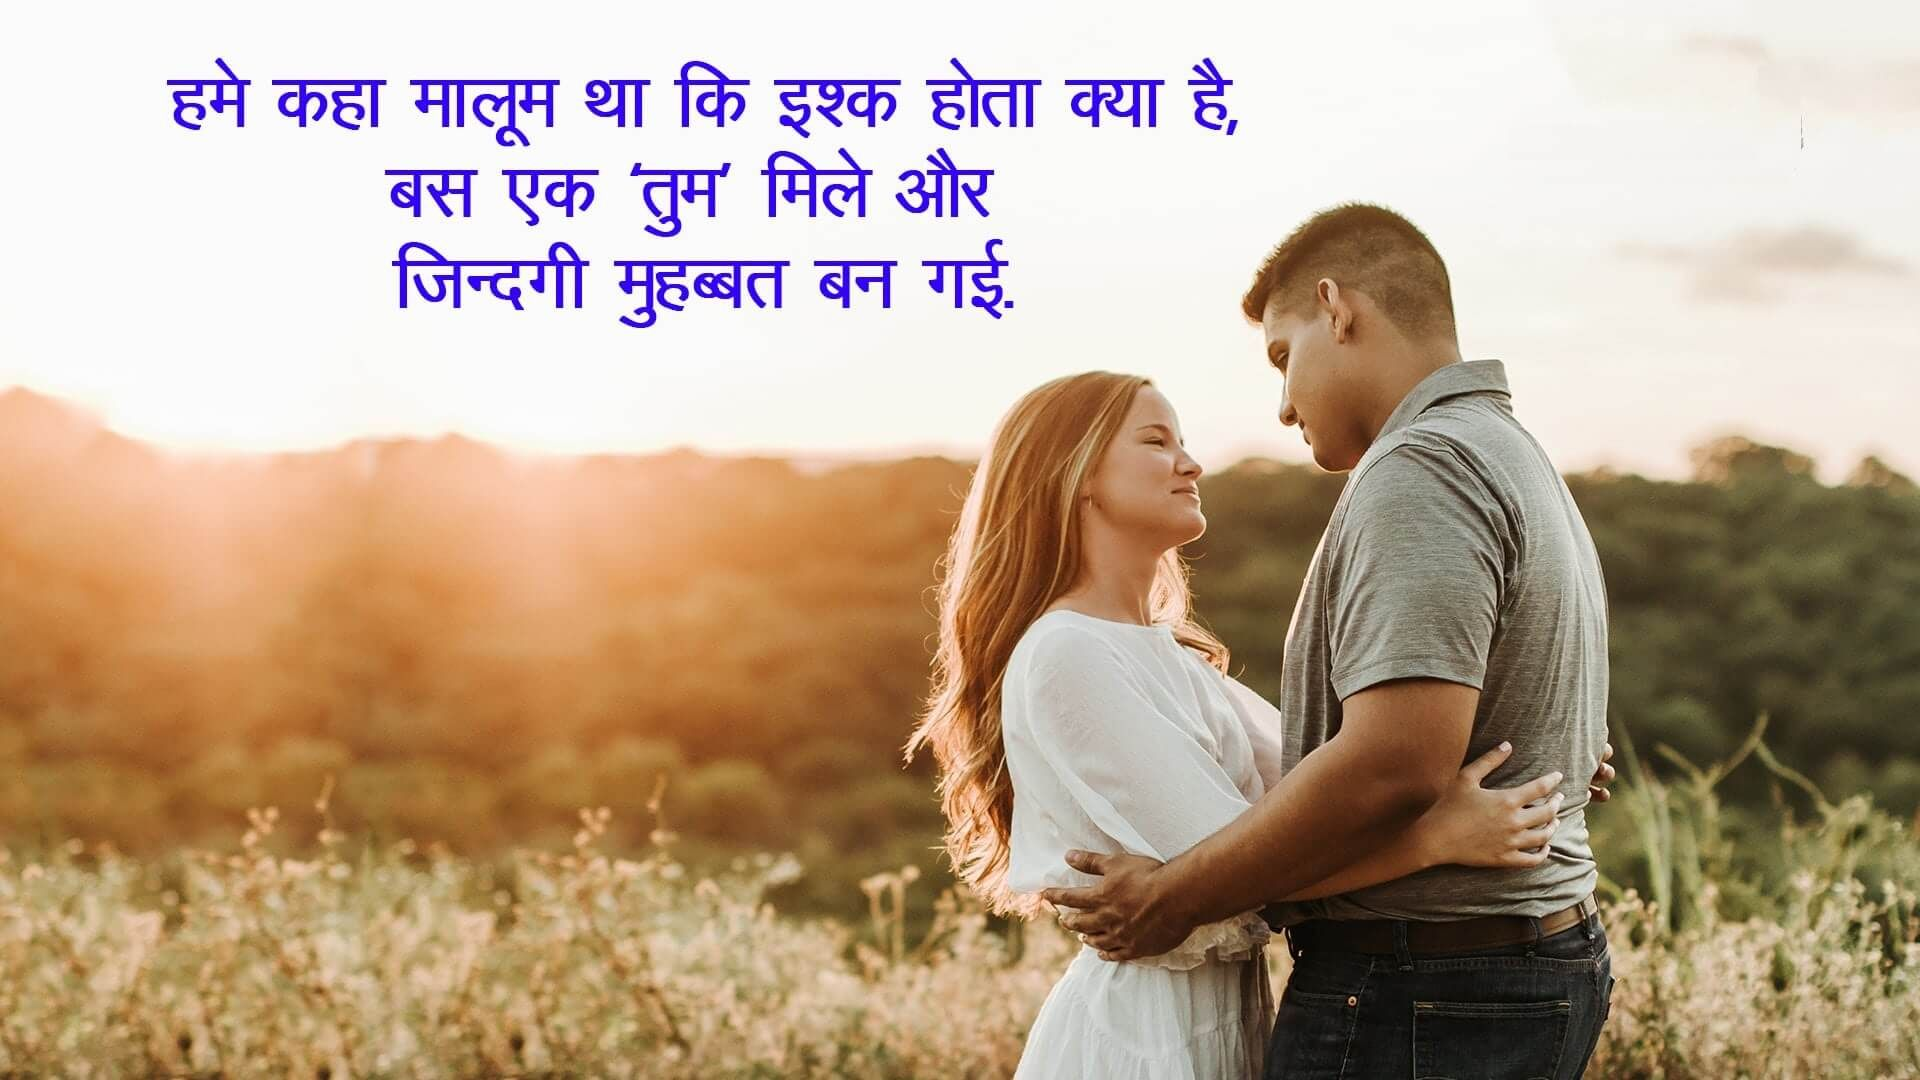 1254 Love Images Photo Pics Wallpaper Hd For Whatsapp Dp Profile 30 August 2021